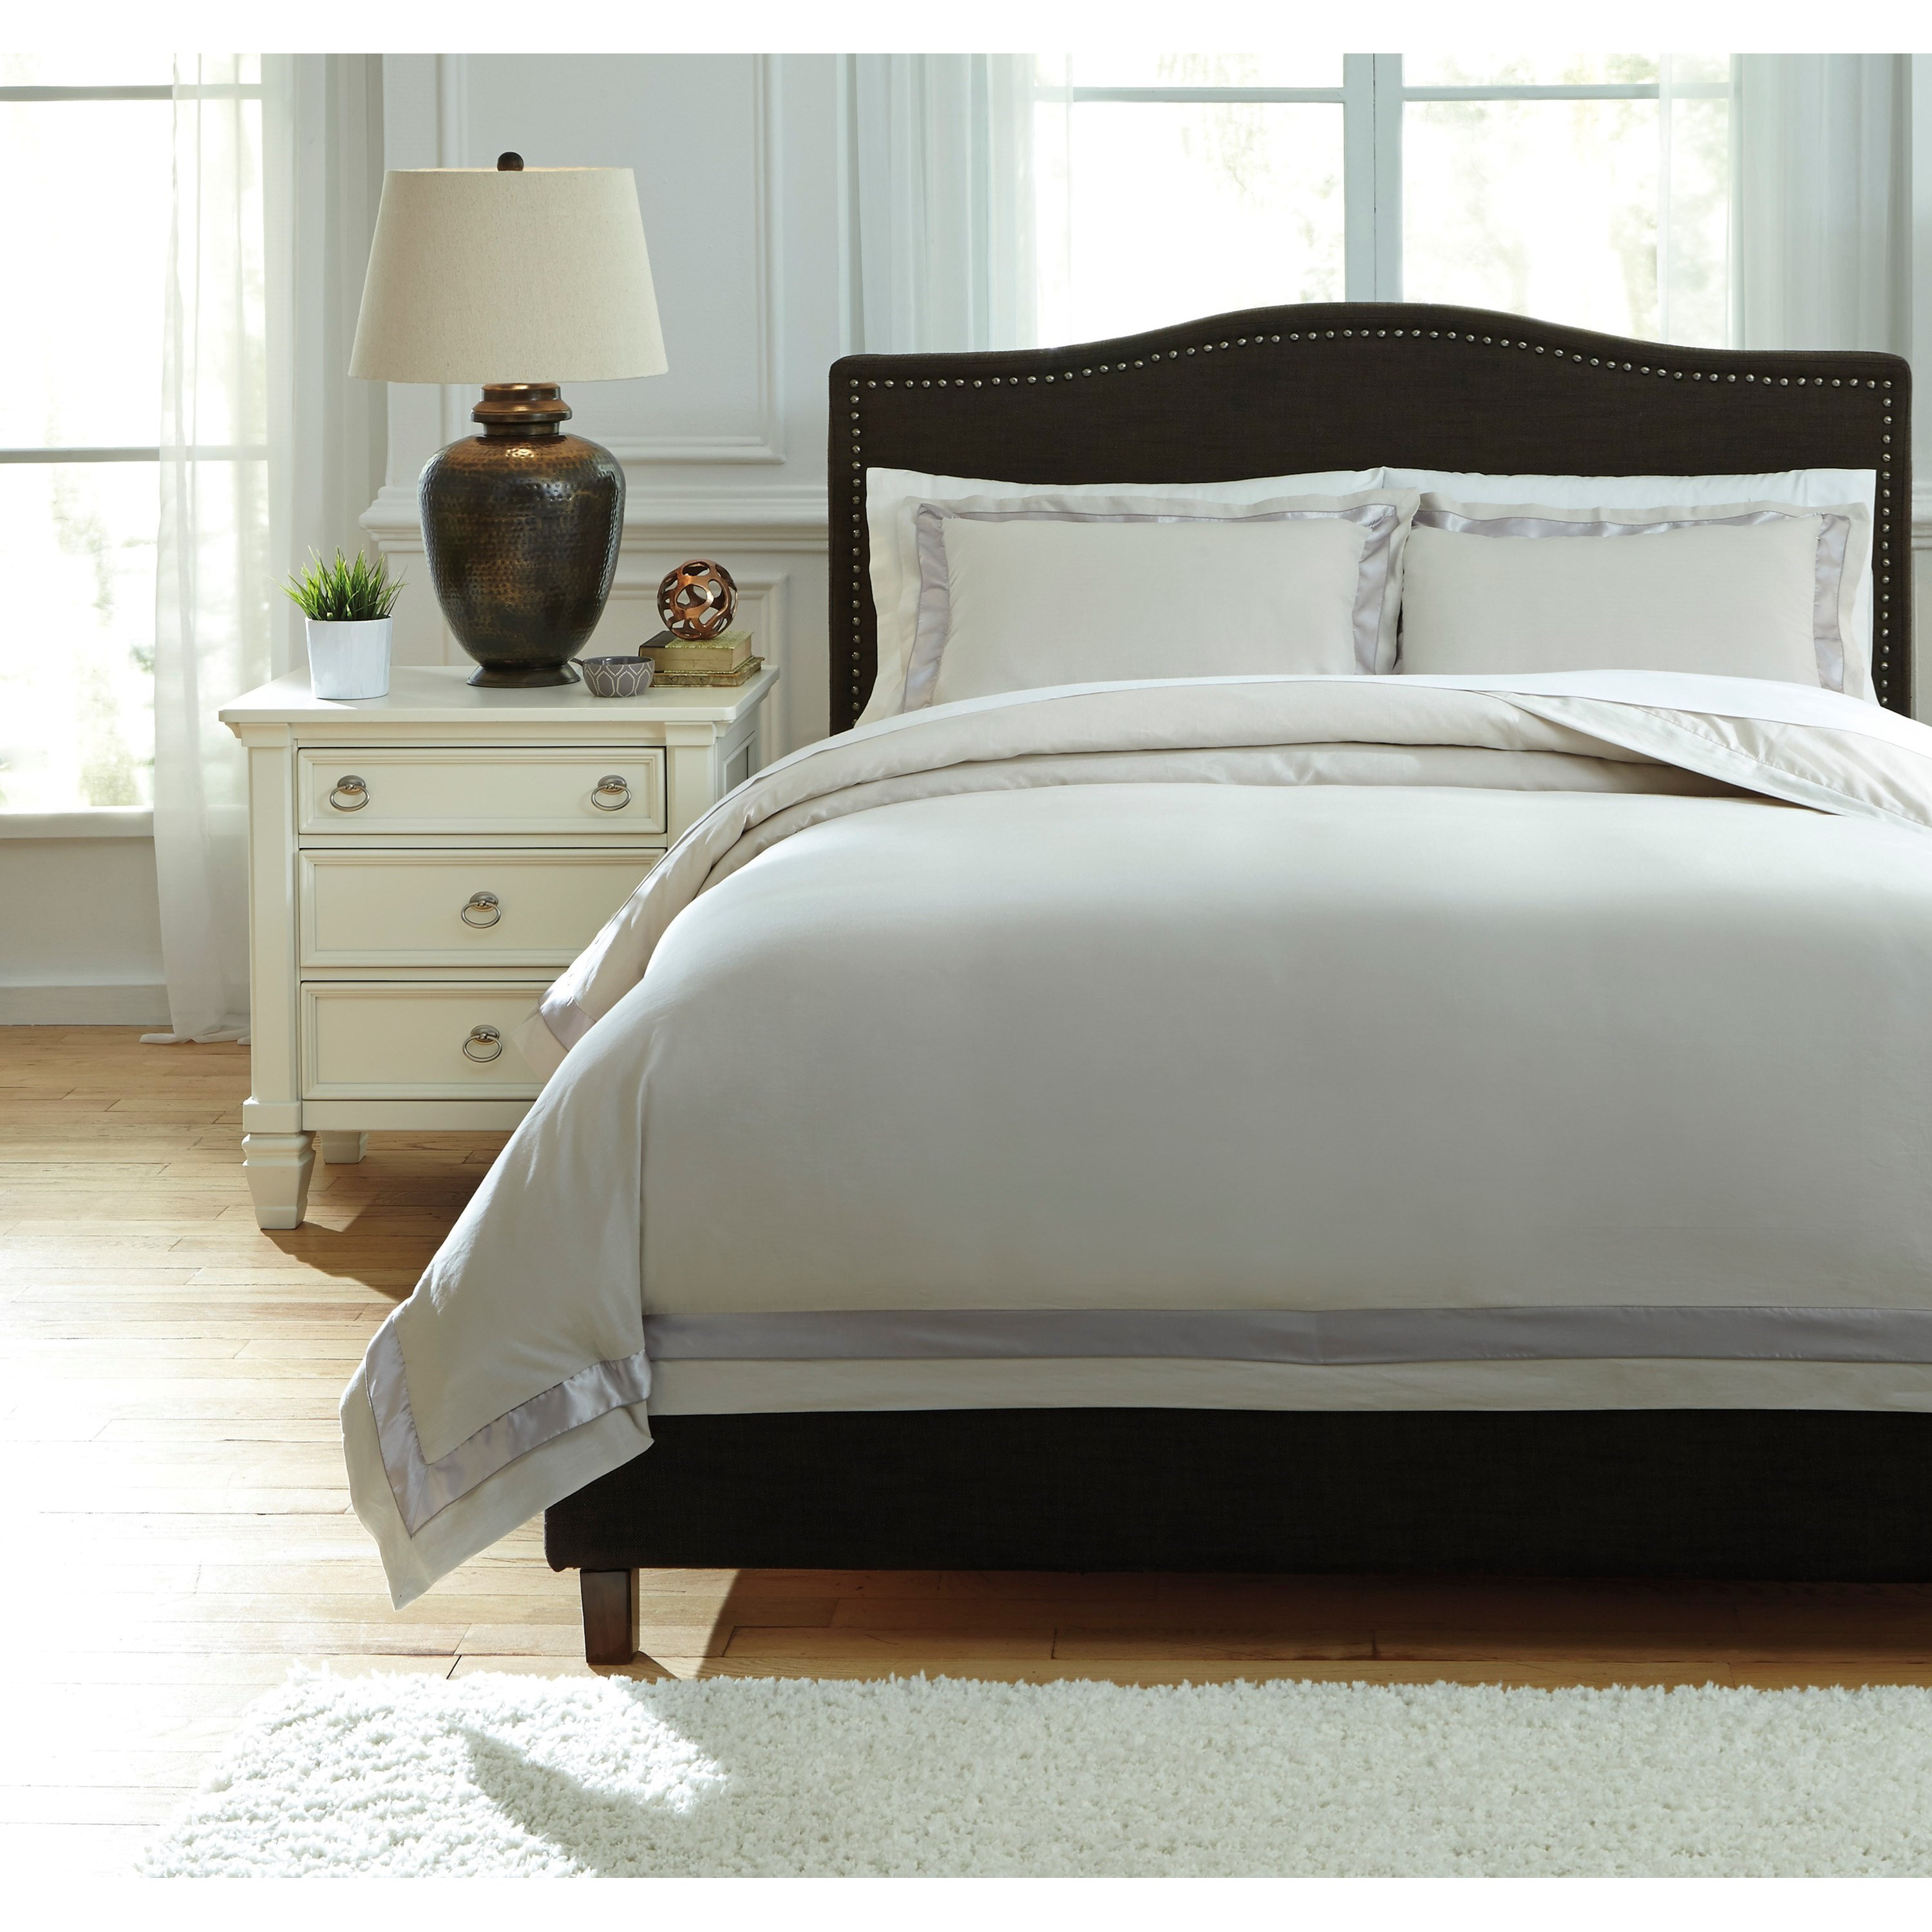 Signature Design by Ashley Bedding Sets King Faraday Natural Duvet Cover Set - Item Number: Q755013K